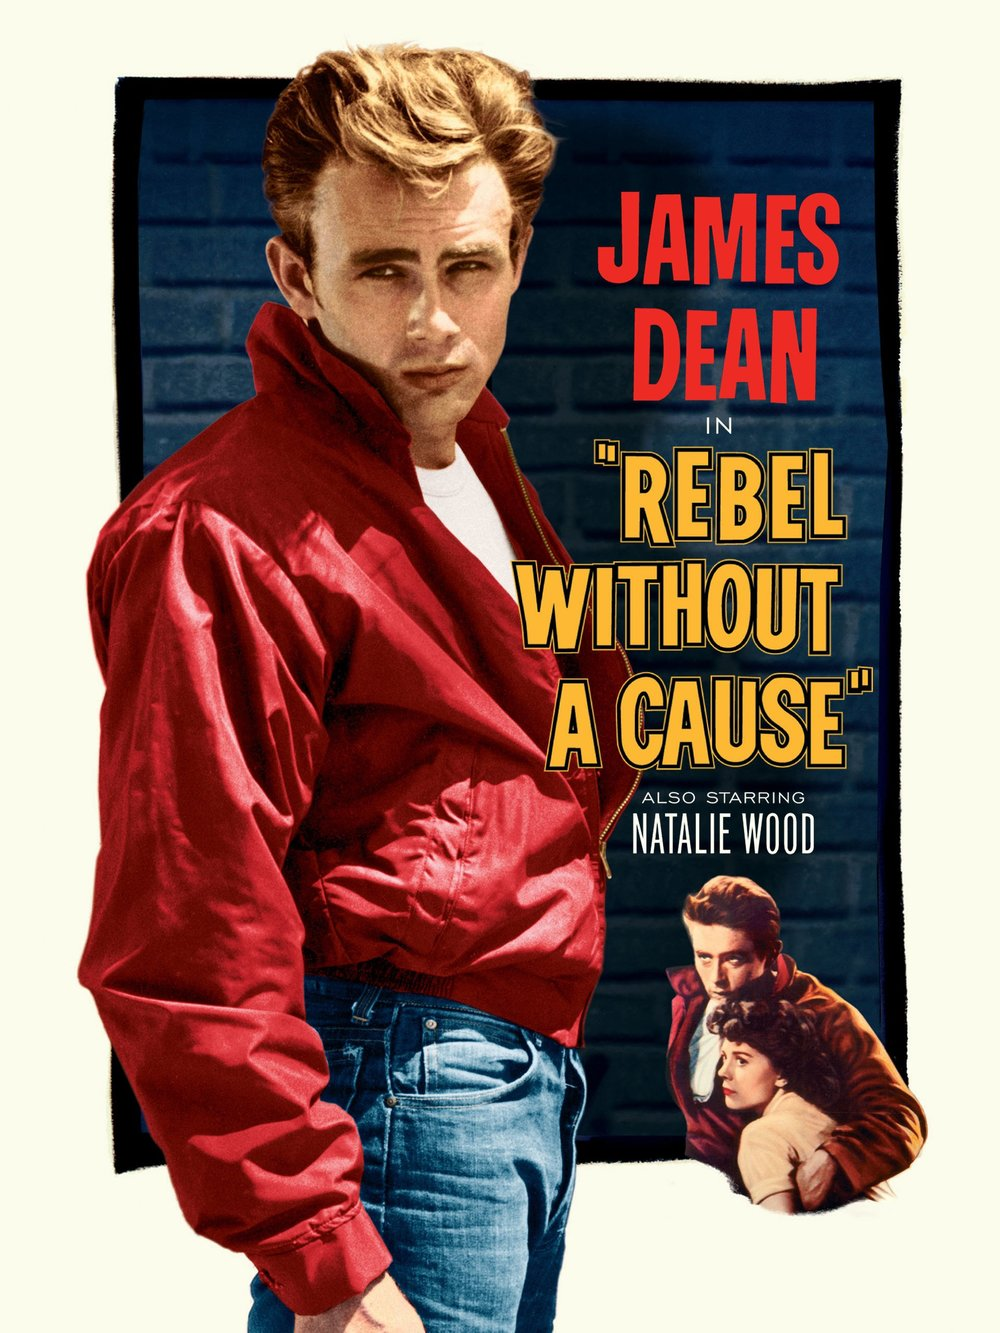 James Dean Style Icon Rebel without a cause classic movies review